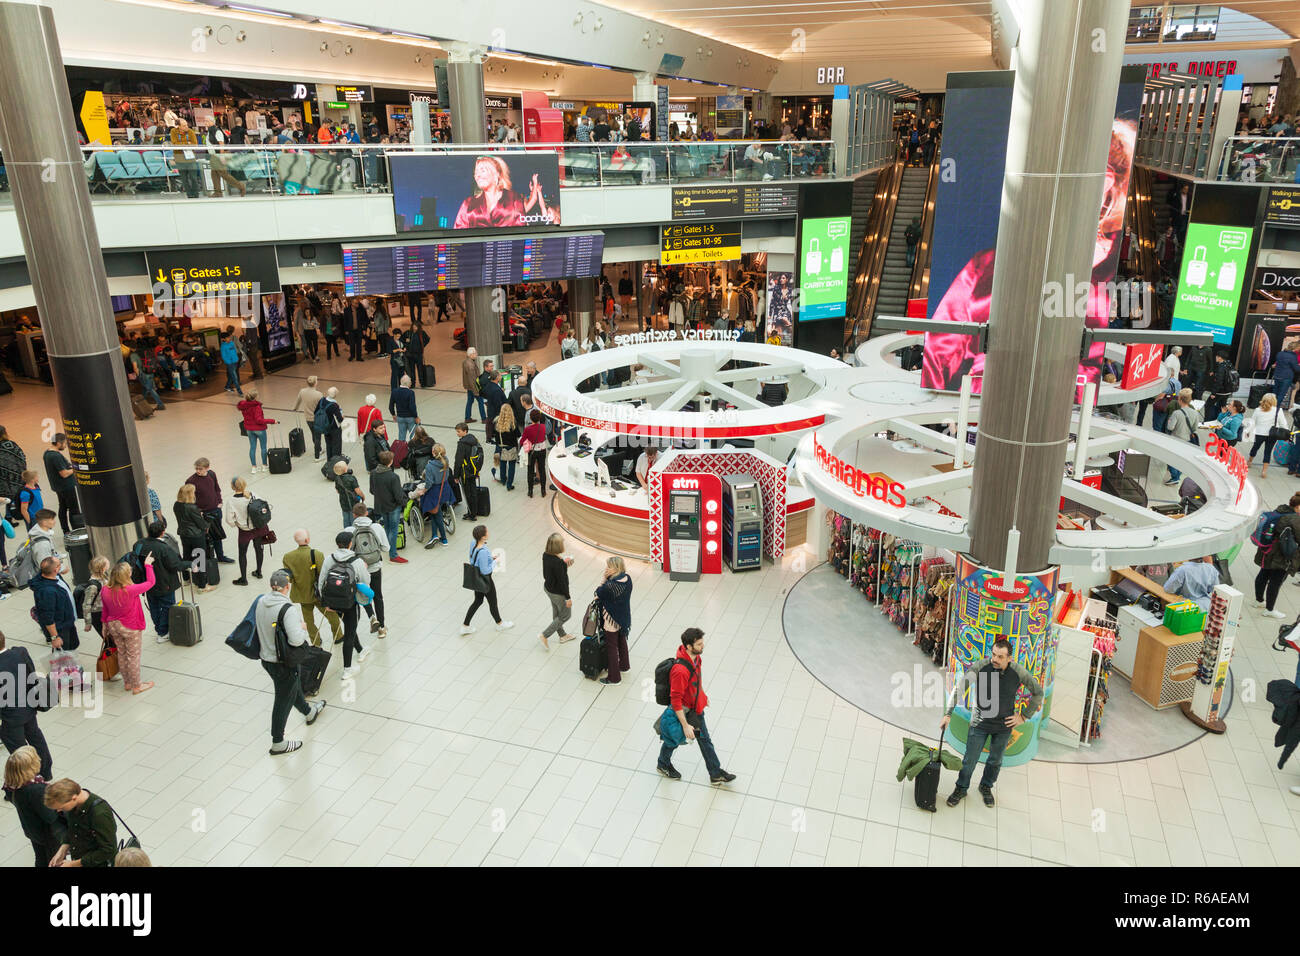 Shops and restaurants in departure lounge of London Gatwick Airport  LGW South terminal, England, United Kingdom. - Stock Image